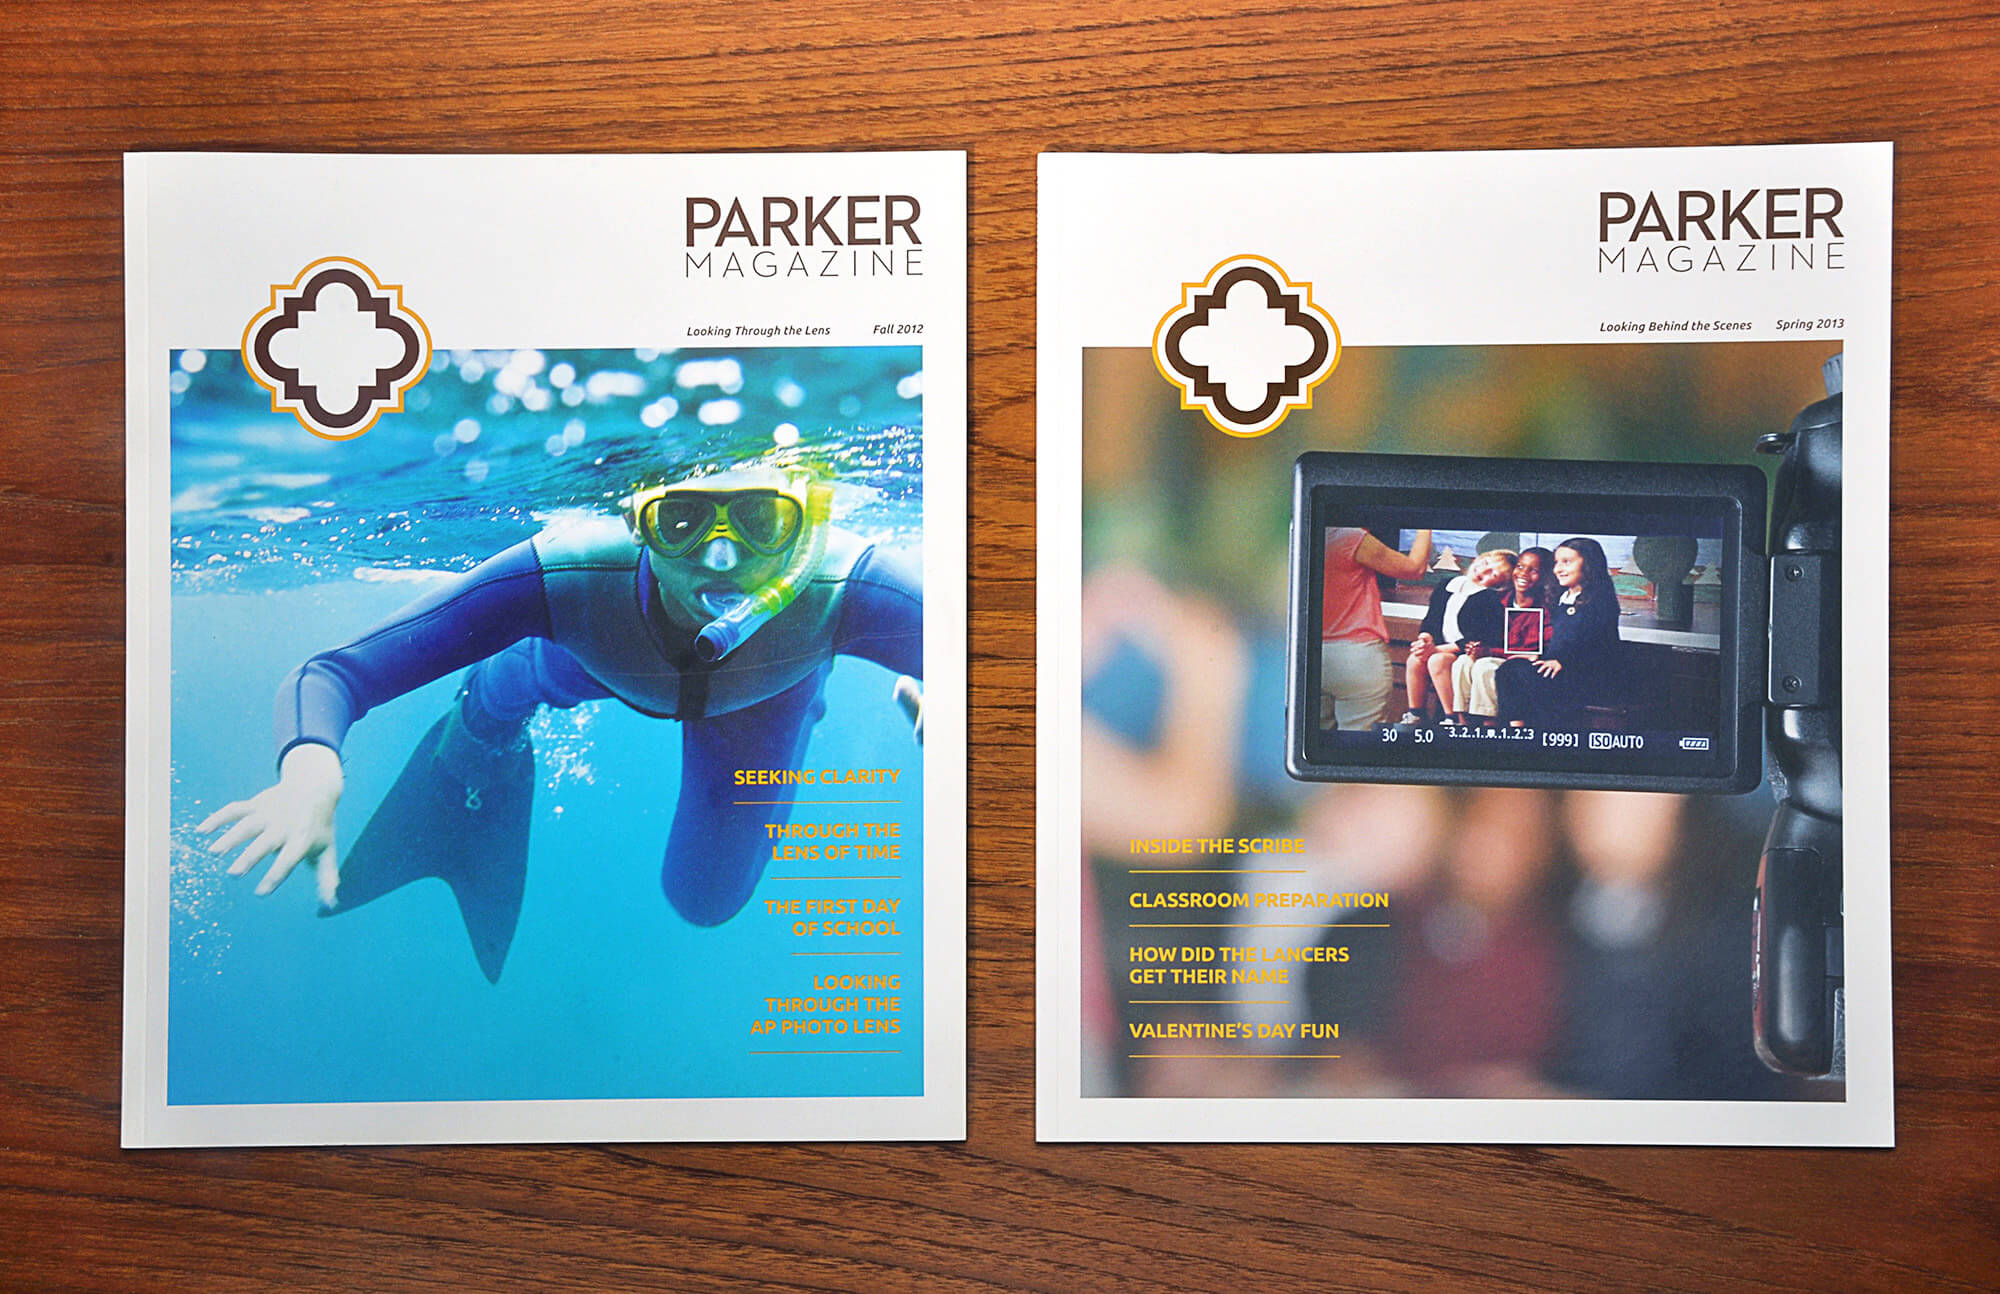 parker-magazine-two-issues